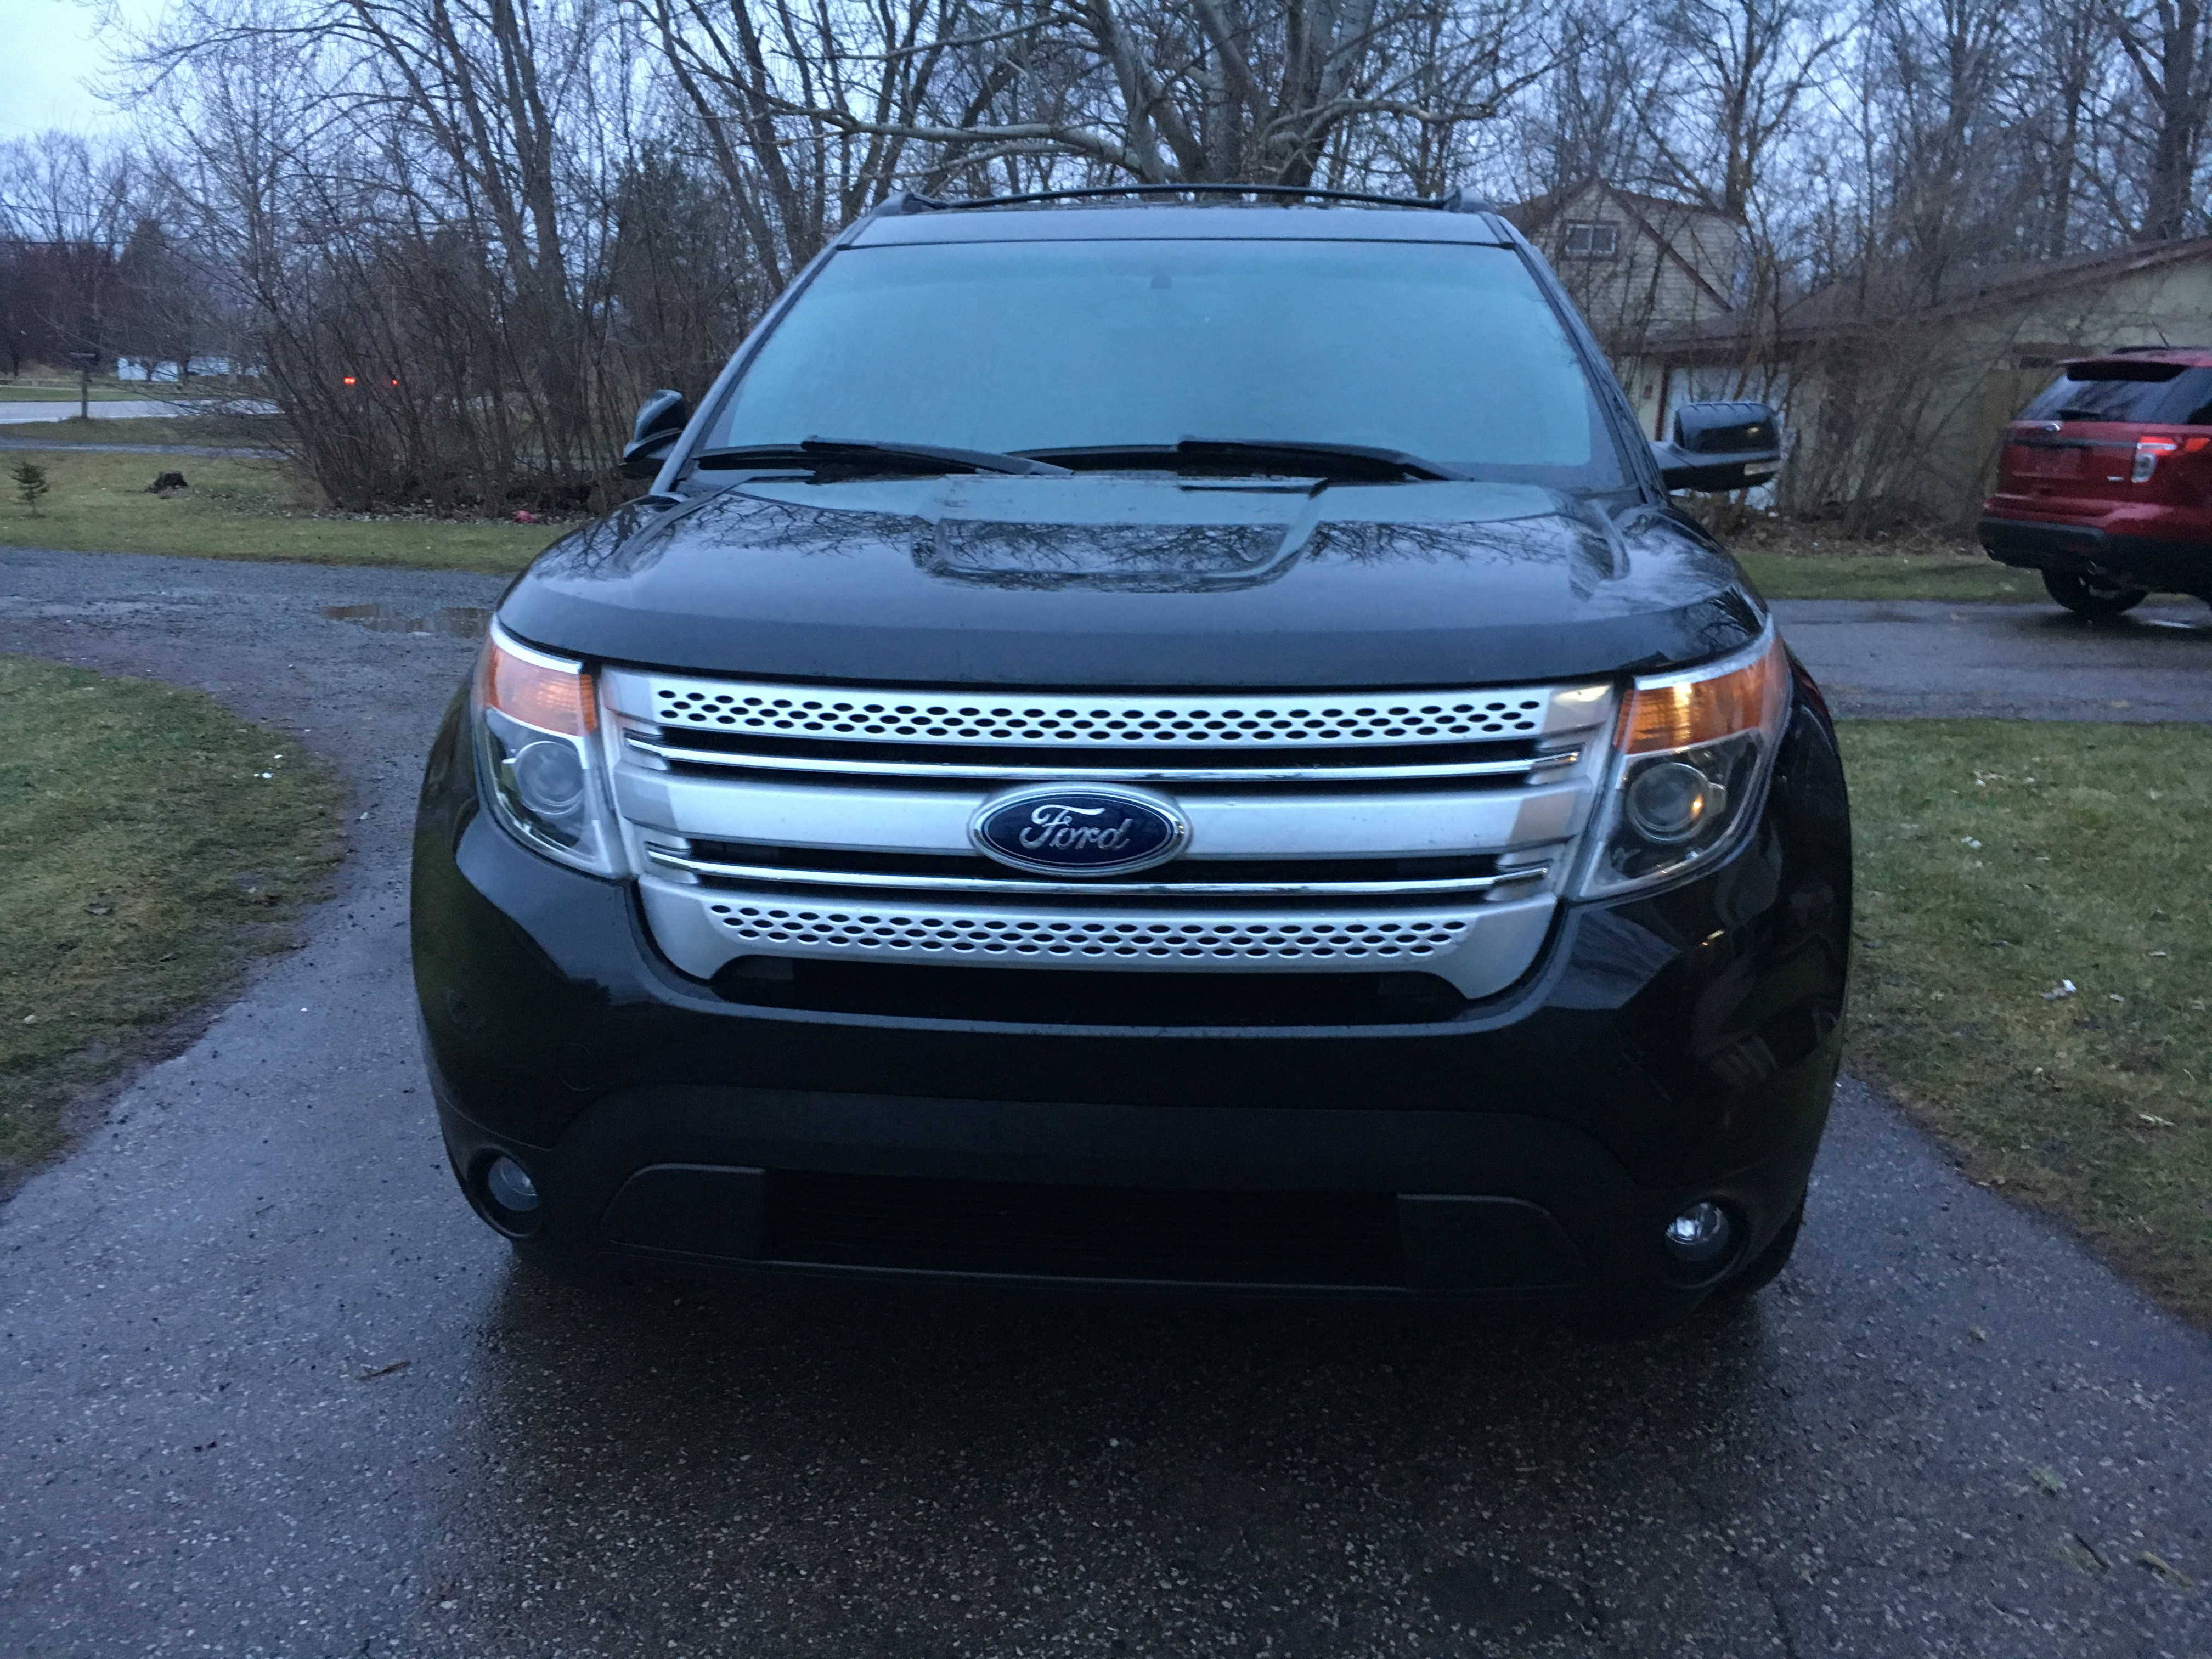 certified owned inventory fwd explorer pre xlt sport utility ford in